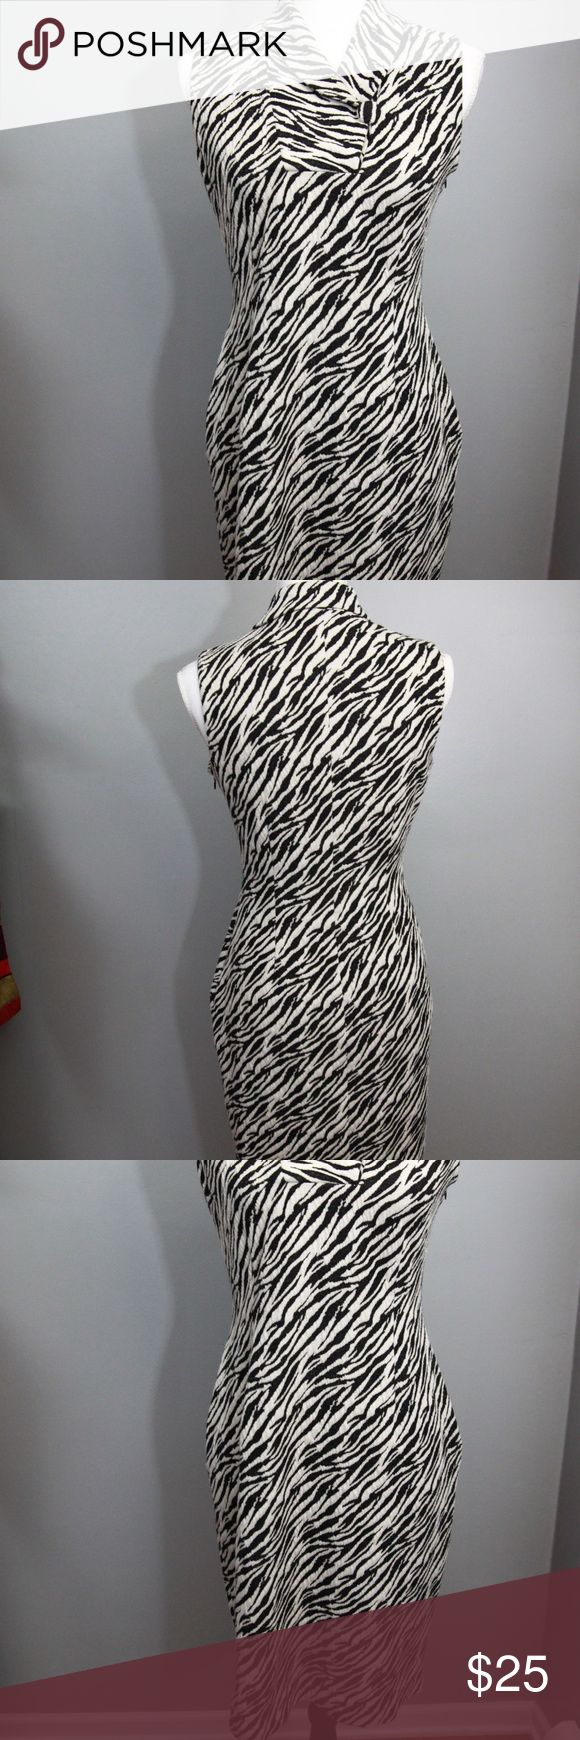 Calvin Klein Zebra Print Dress Sz 4 Calvin Klein black and beige zebra print sleeveless dress. Buttons at neckline but can be left open for a new look. Side zip. Polyester 84%, rayon 15%, spandex 1%, dry clean.  Measurements Bust 38 inches Length 40 inches down mid back  inventory 55-117 Calvin Klein Dresses